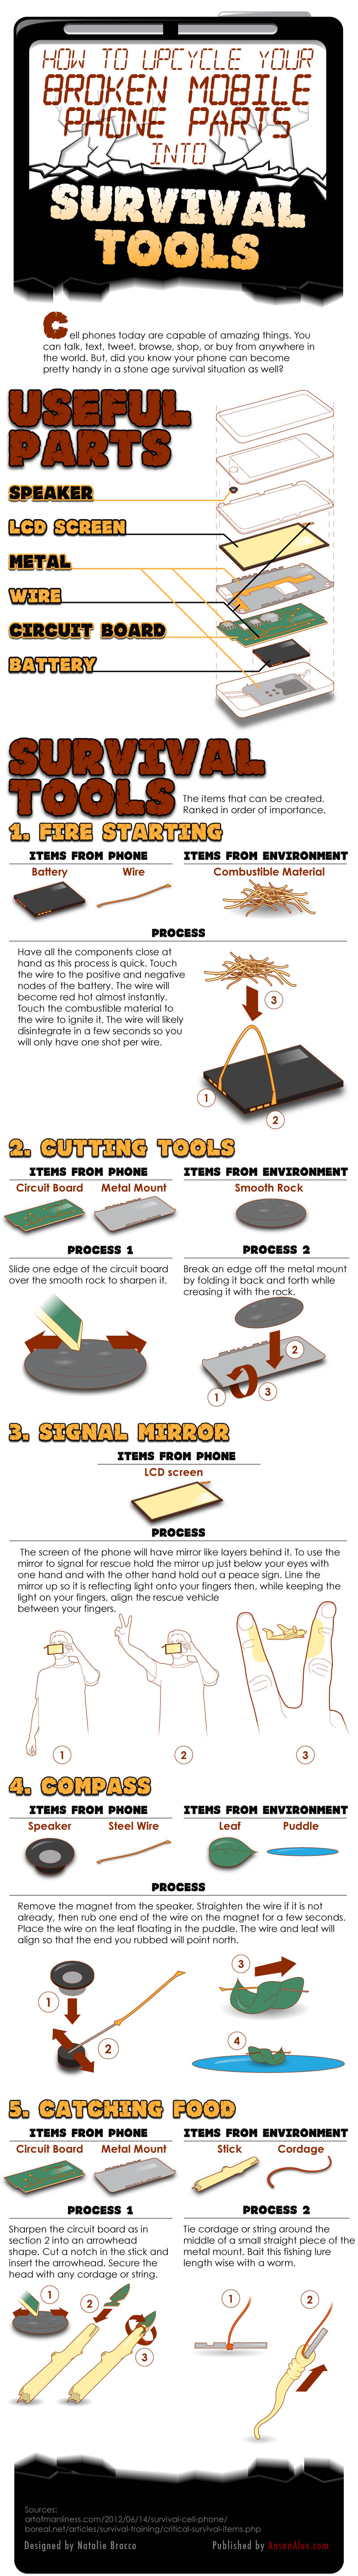 How to Use Parts Broken Cell Phone as Survival Tools Infographic